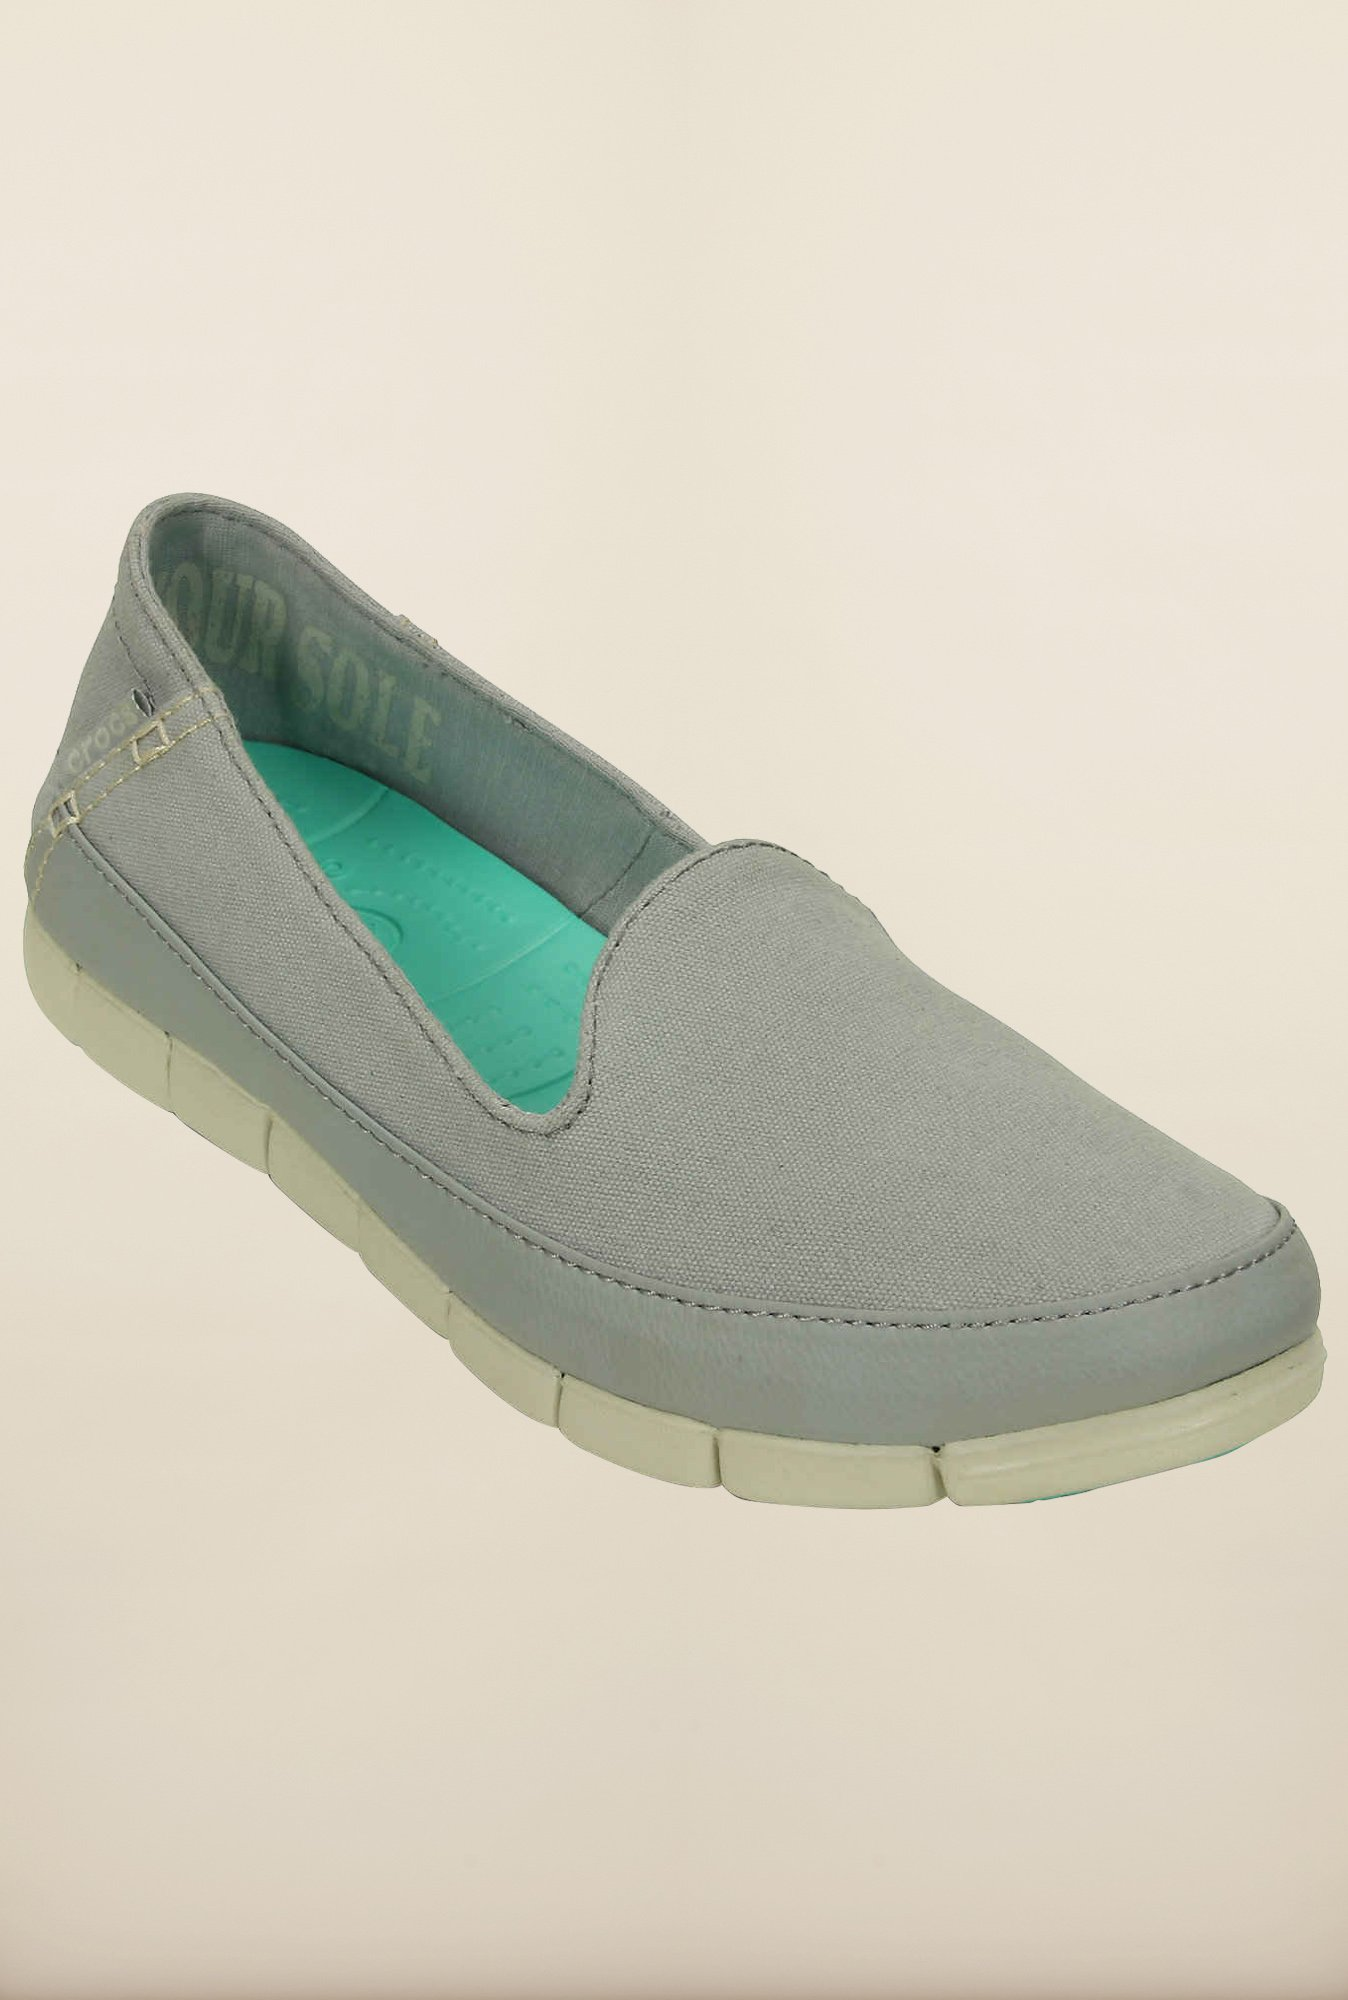 Crocs Stretch Sole Light Grey & Stucco Loafers